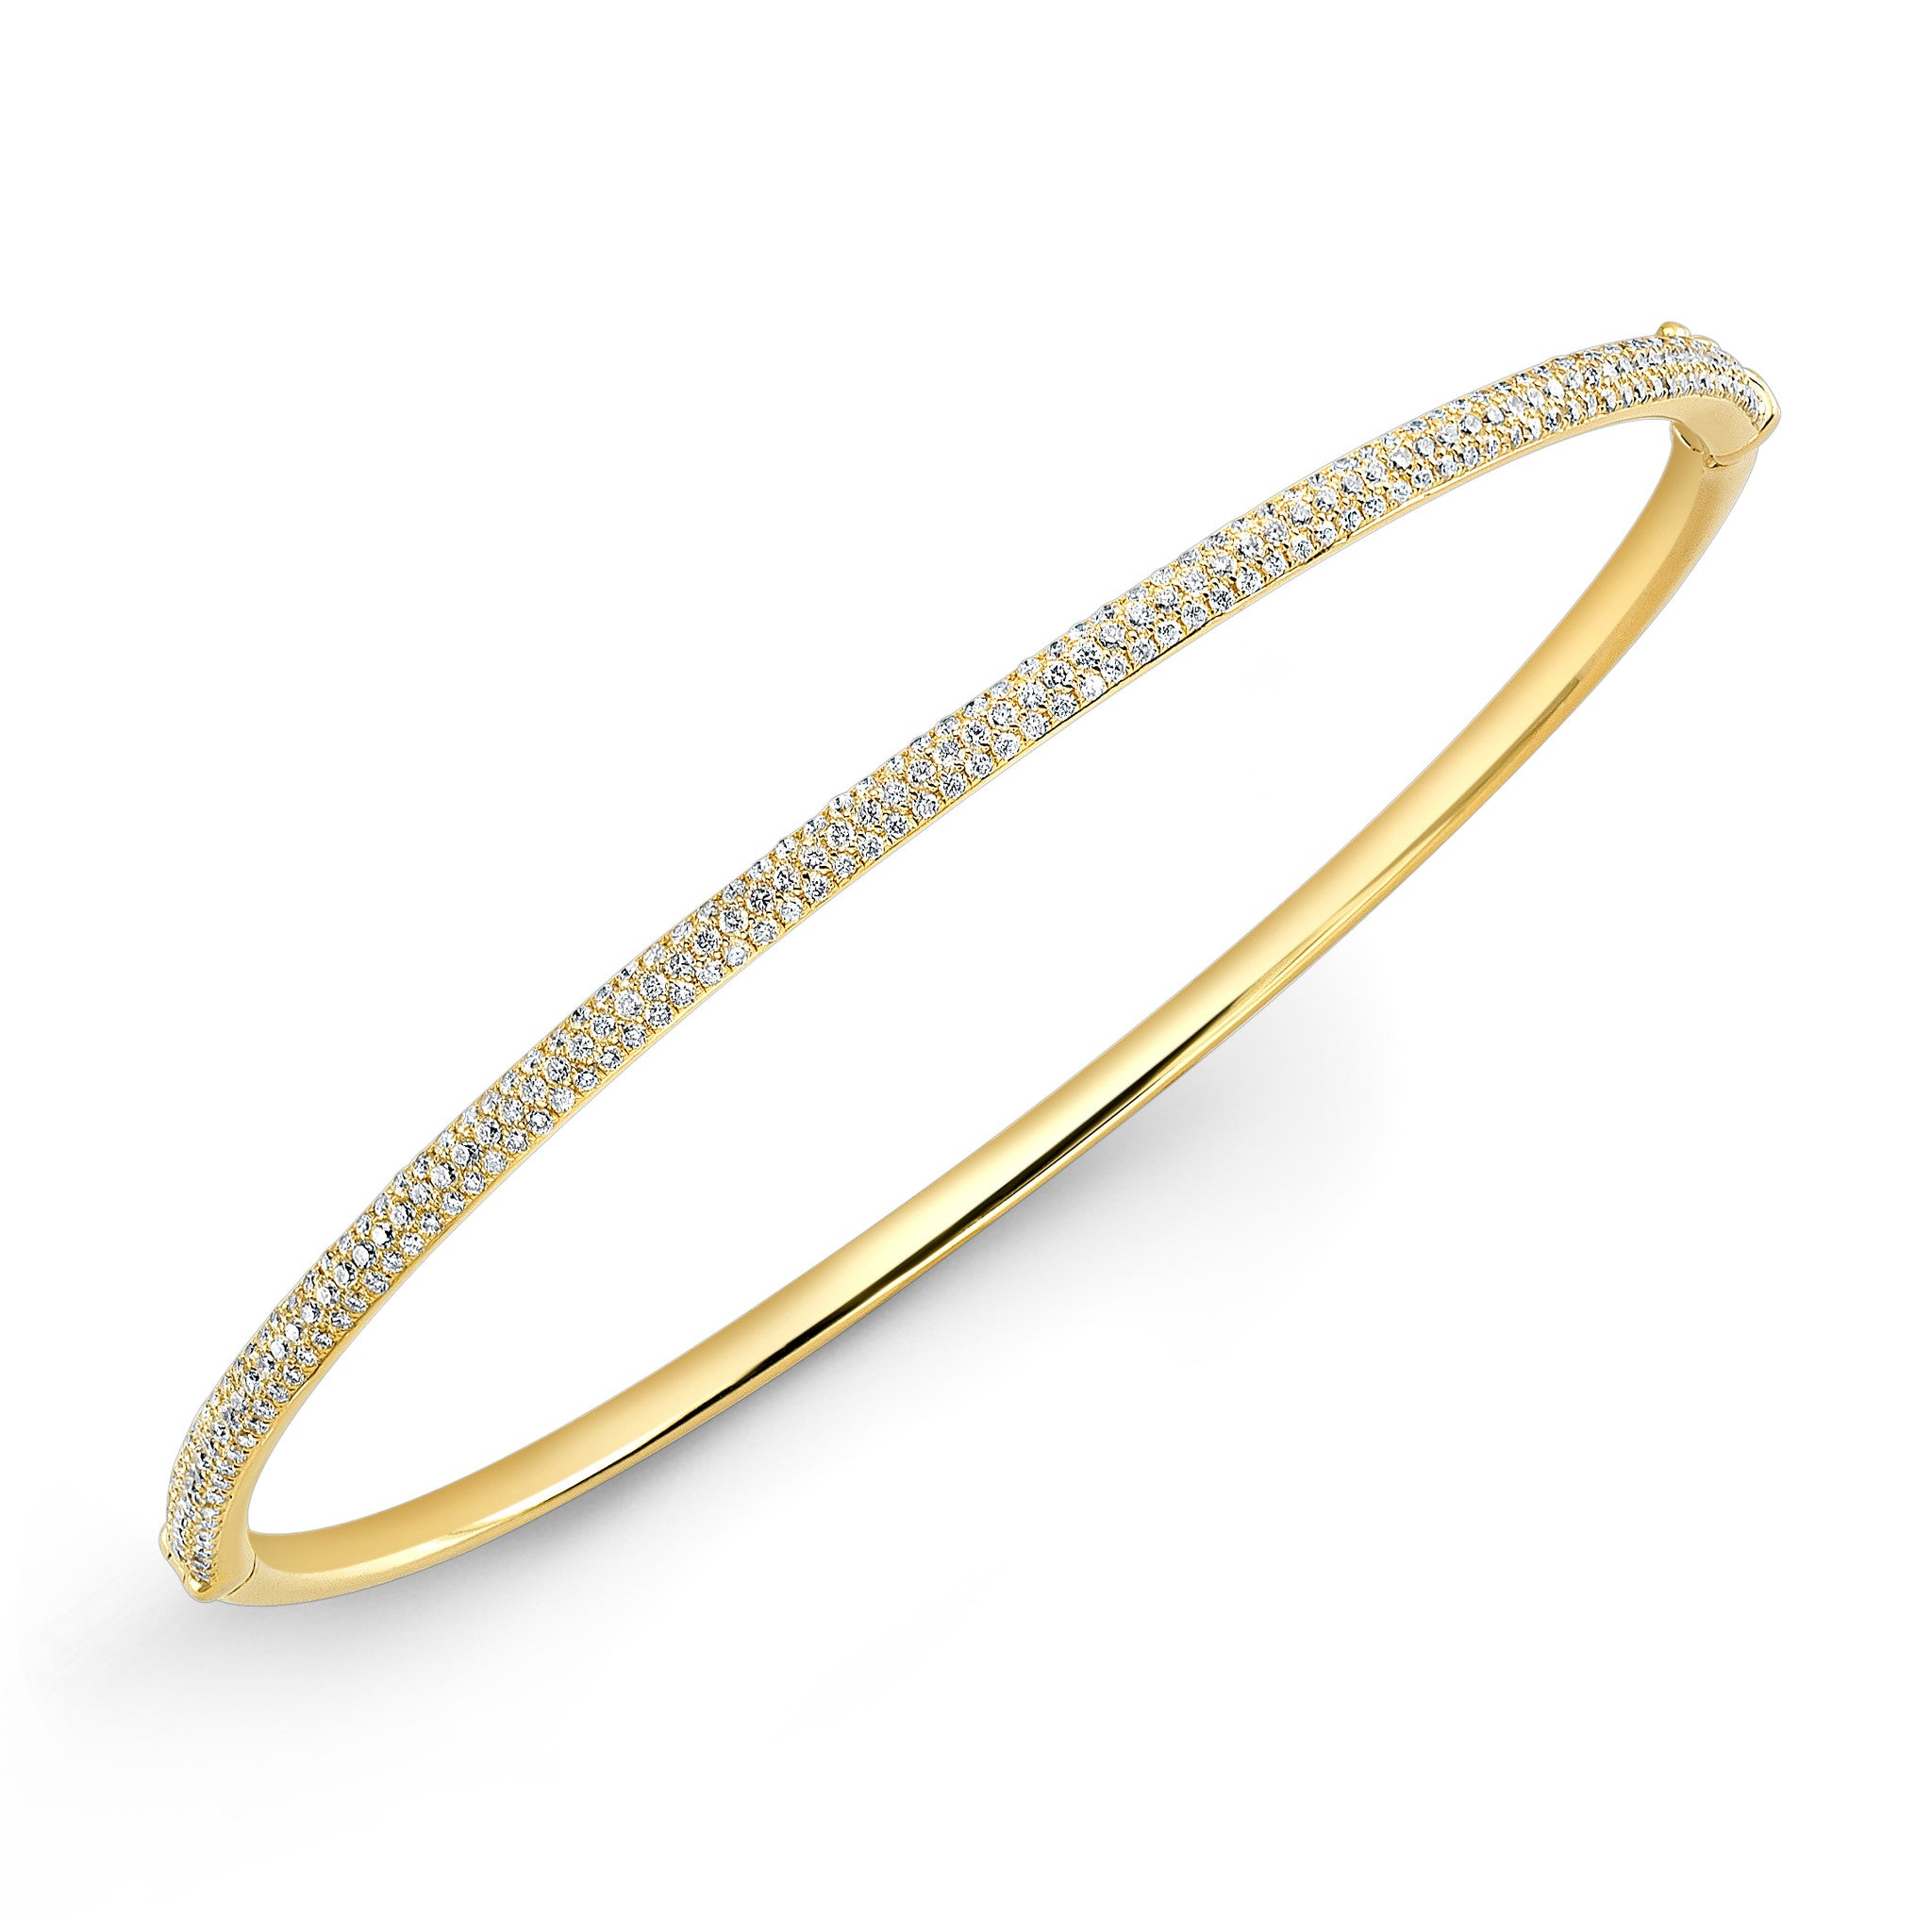 bangle bracelet bangles kc pin rose designs gold diamond